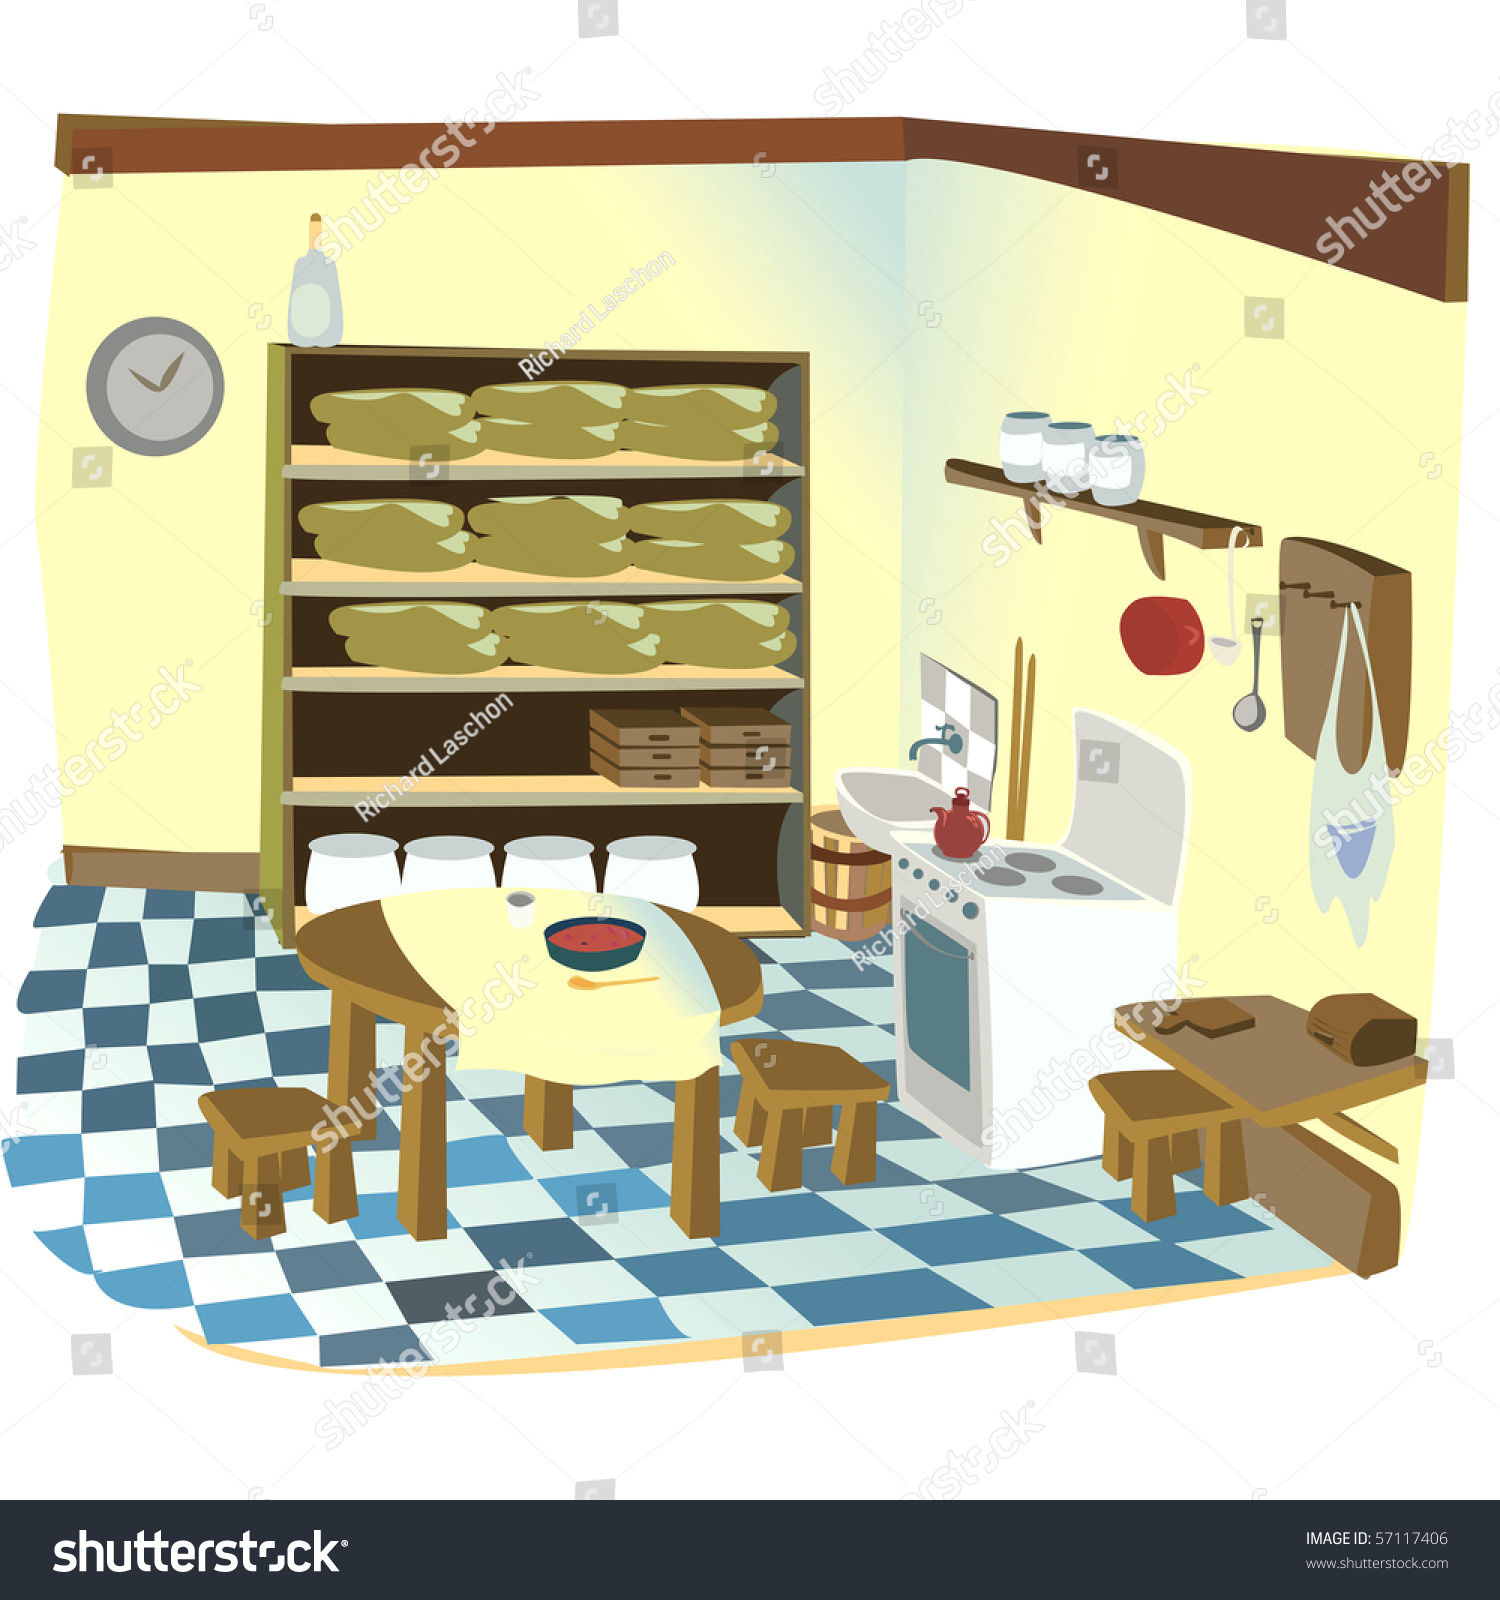 Kitchen Cabinet Clip Art: Cartoon Illustration Old Rustic Kitchen Stock Illustration